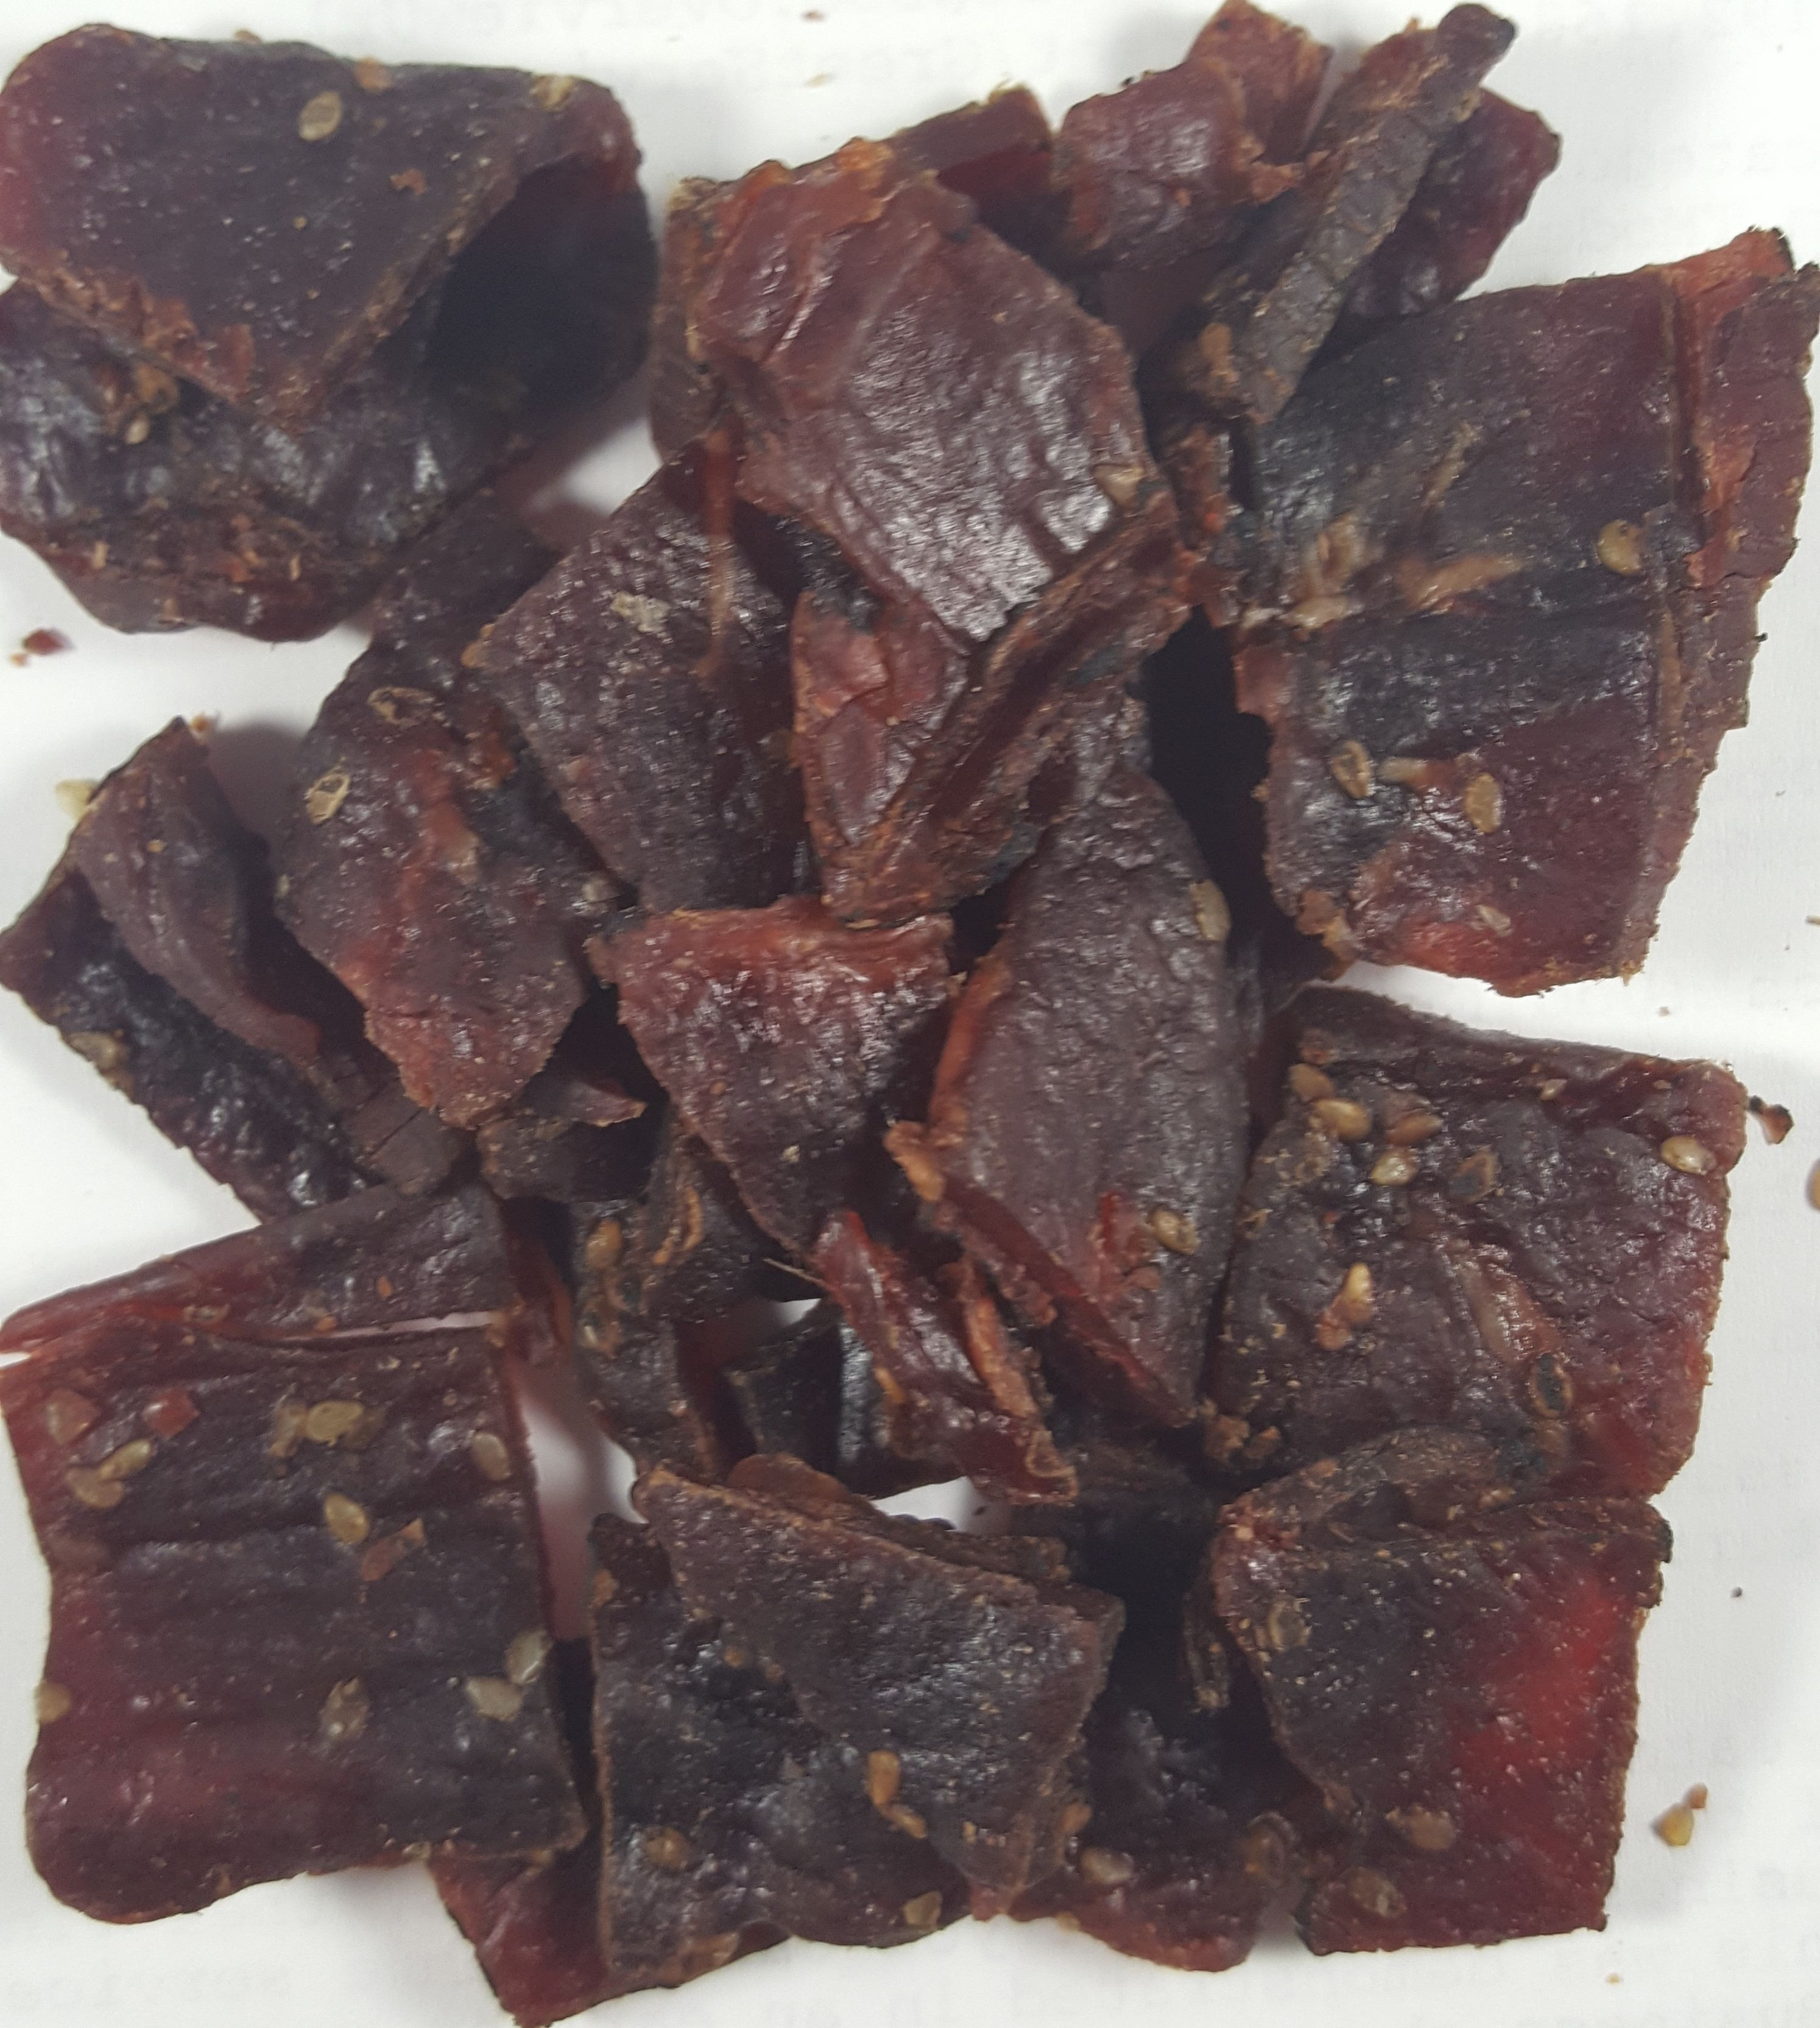 Lorissa S Kitchen Canada Korean Barbecue 100 Grass Fed Beef Jerky Beef Jerky Grass Fed Beef Jerky Grass Fed Beef